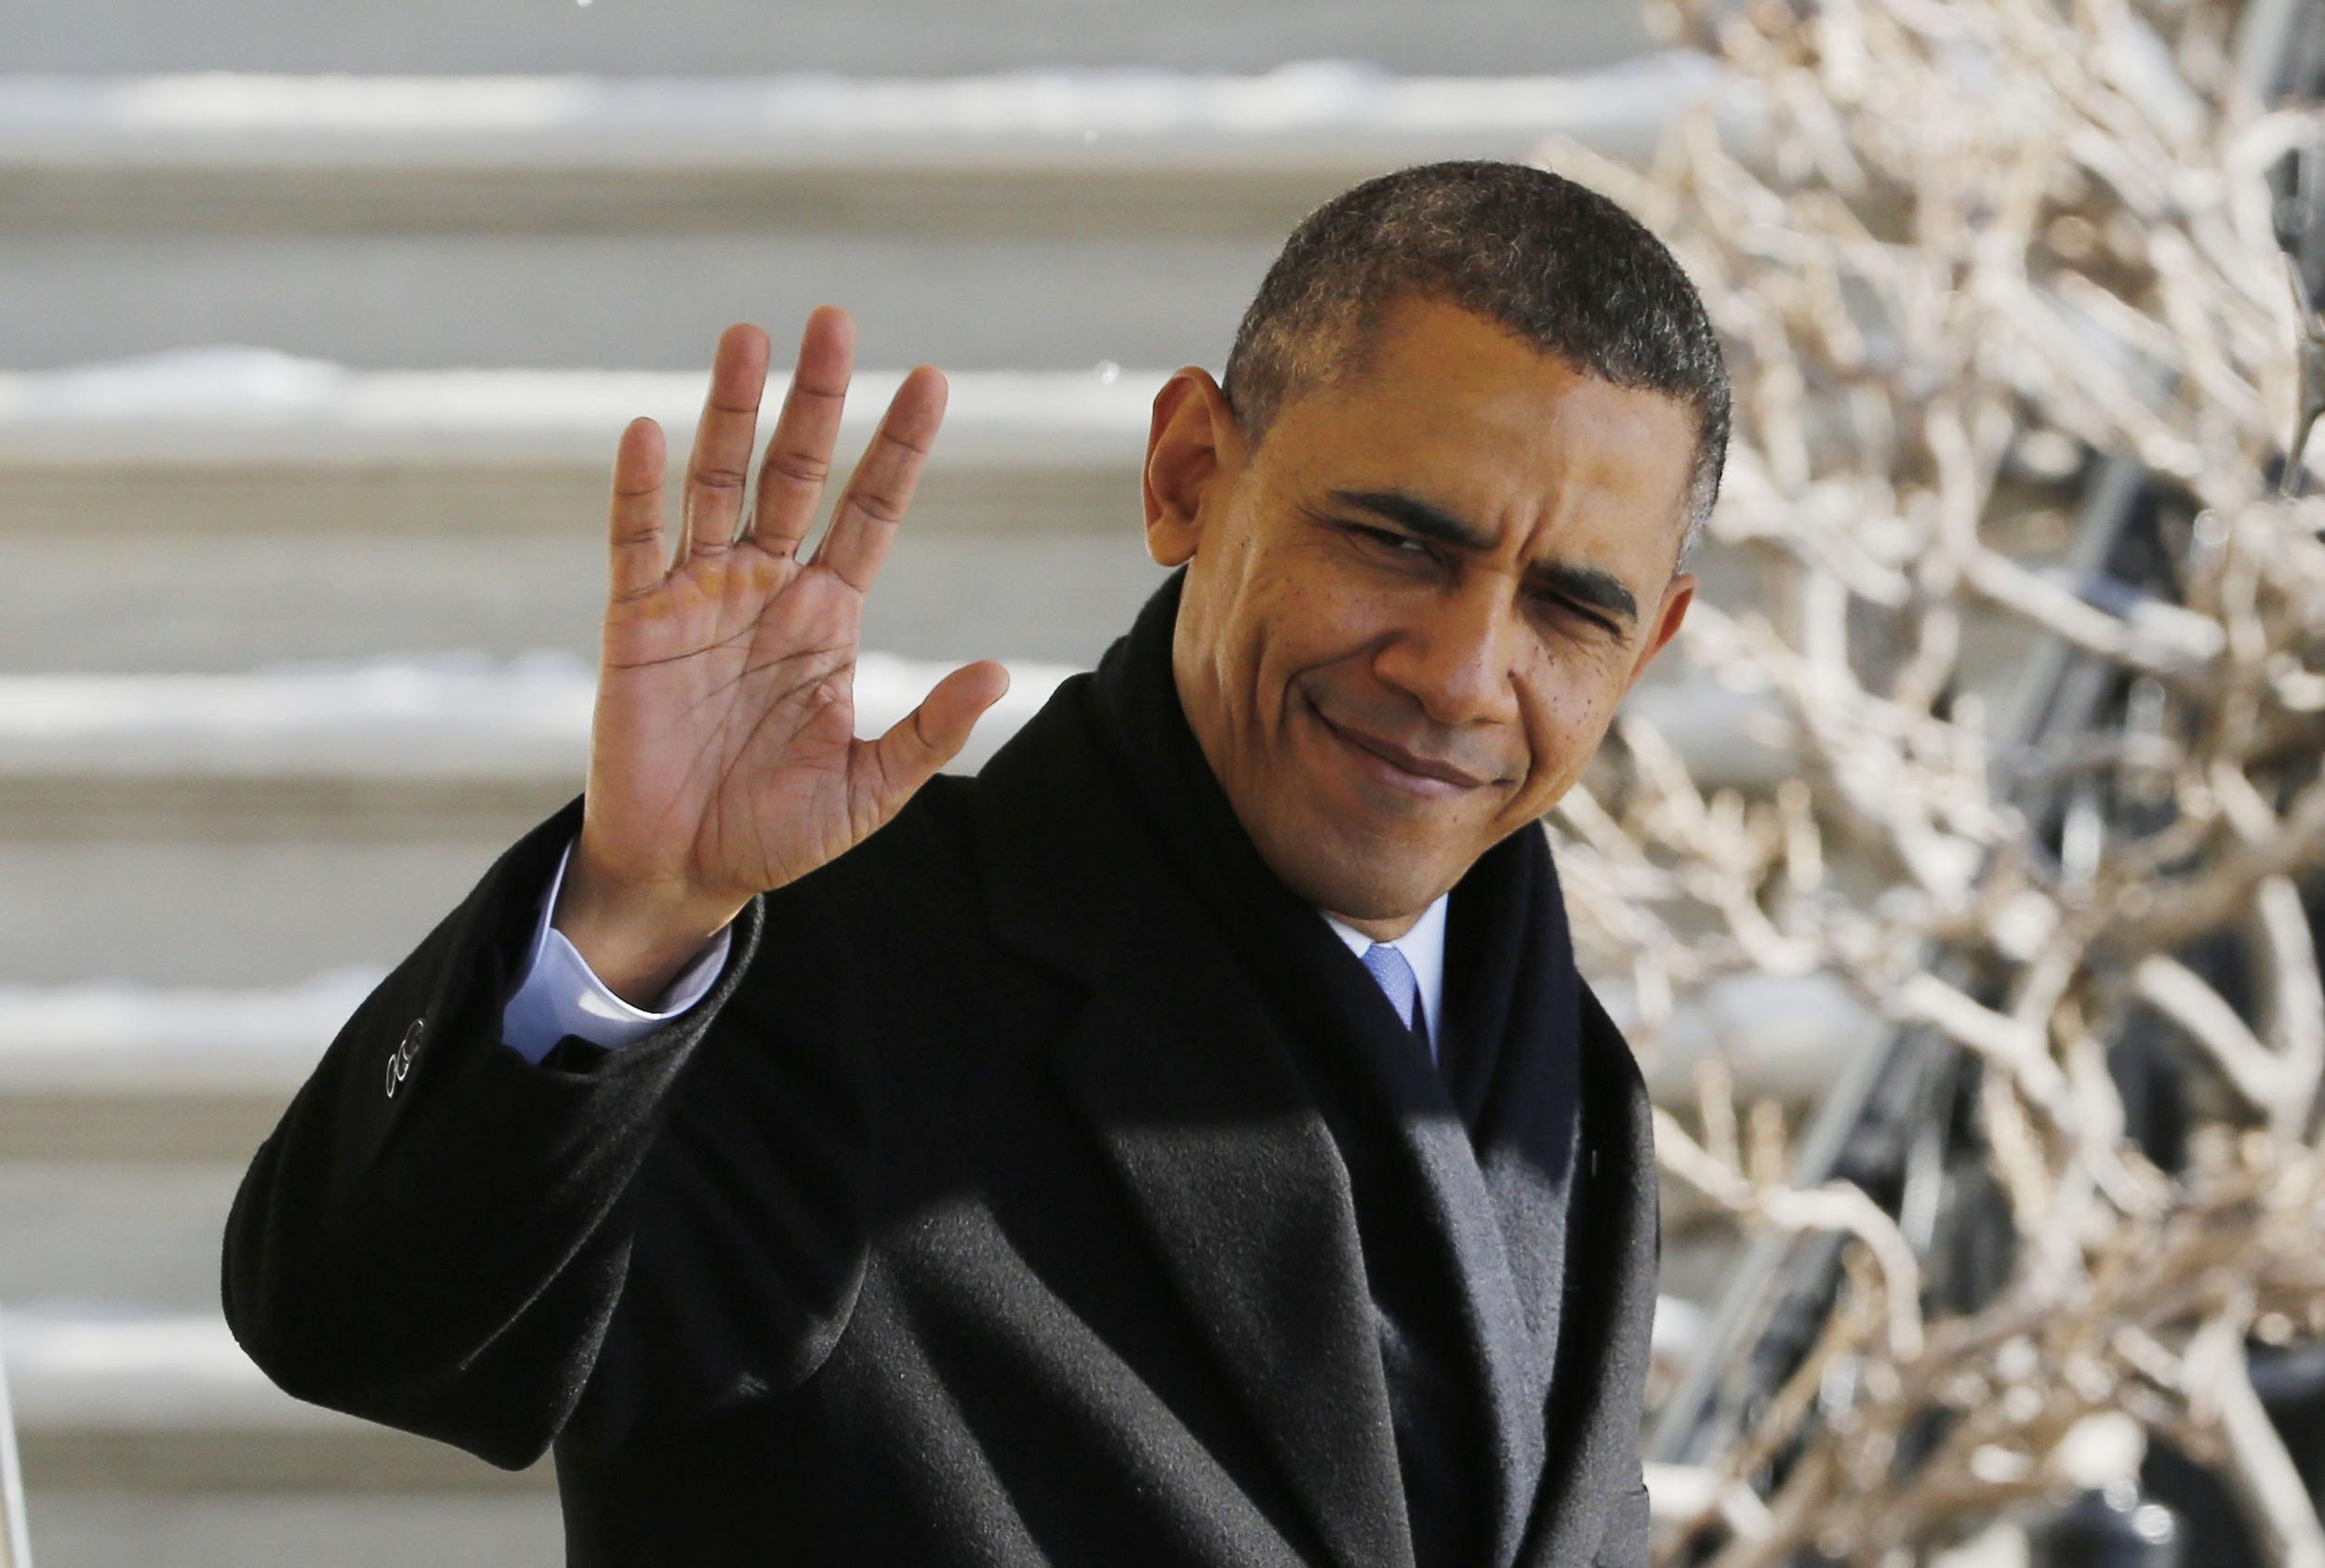 Image: U.S. President Barack Obama waves before departing the White House in Washington